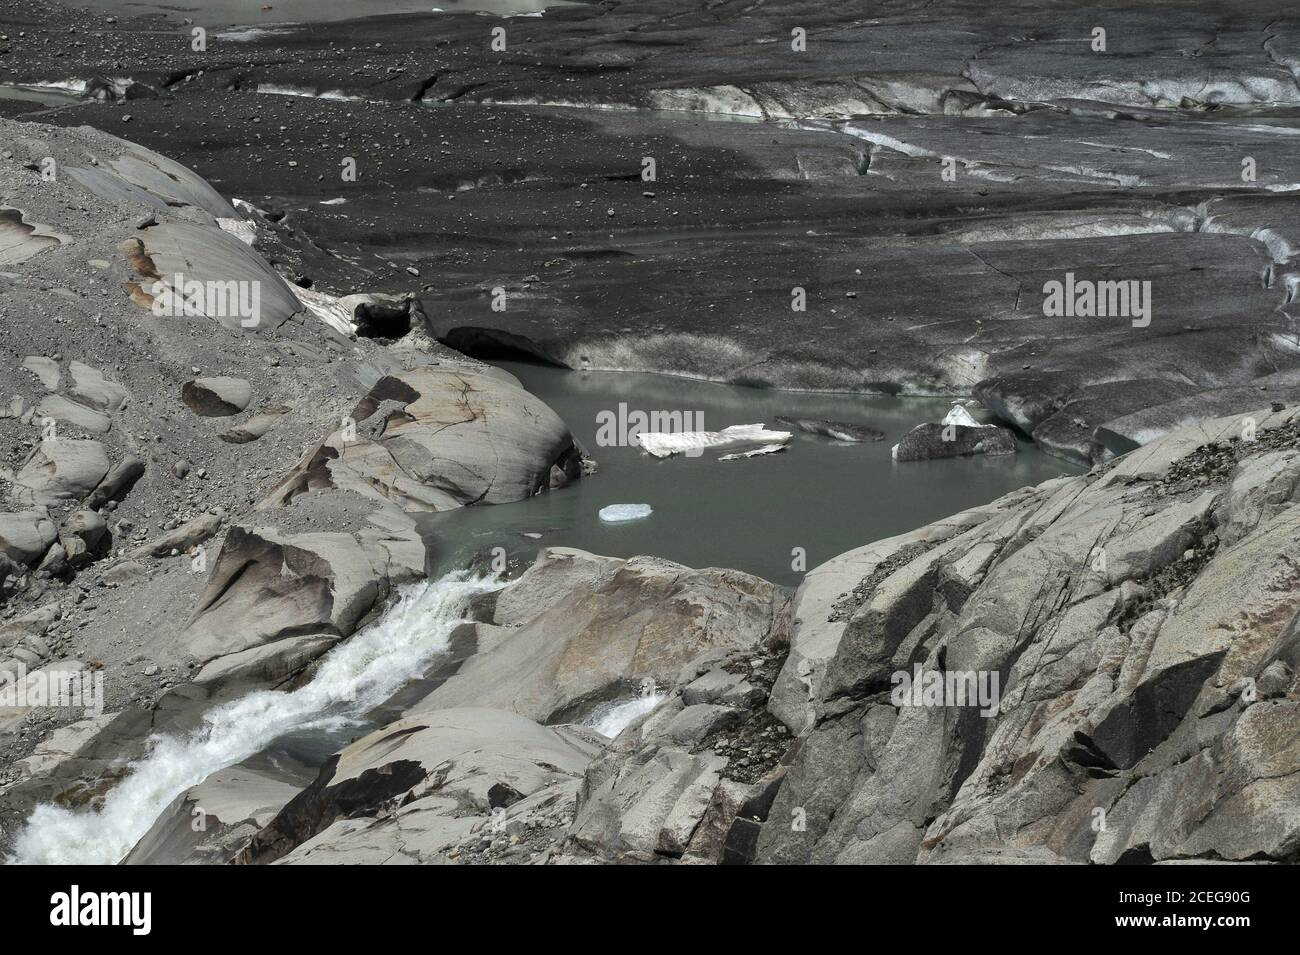 Climate scientists hold global warming responsible for the retreating Rhône Glacier, source of the River Rhône, now melting in summer below the Furka Pass in Valais canton, Switzerland, at a height of about 2,208 m (7,244 ft).  In 1850, a tongue of ice extended well down the side of the mountain before melting in the valley below.  The glacier flows for 7.65 km (4.75 mi) from high Urner Alps snow fields at about 30 to 40 m (100 to 130 ft) per year.  The torrent flowing from the melt water lake begins the river's 813 km (505 mi) journey through southern France to the Mediterranean. Stock Photo